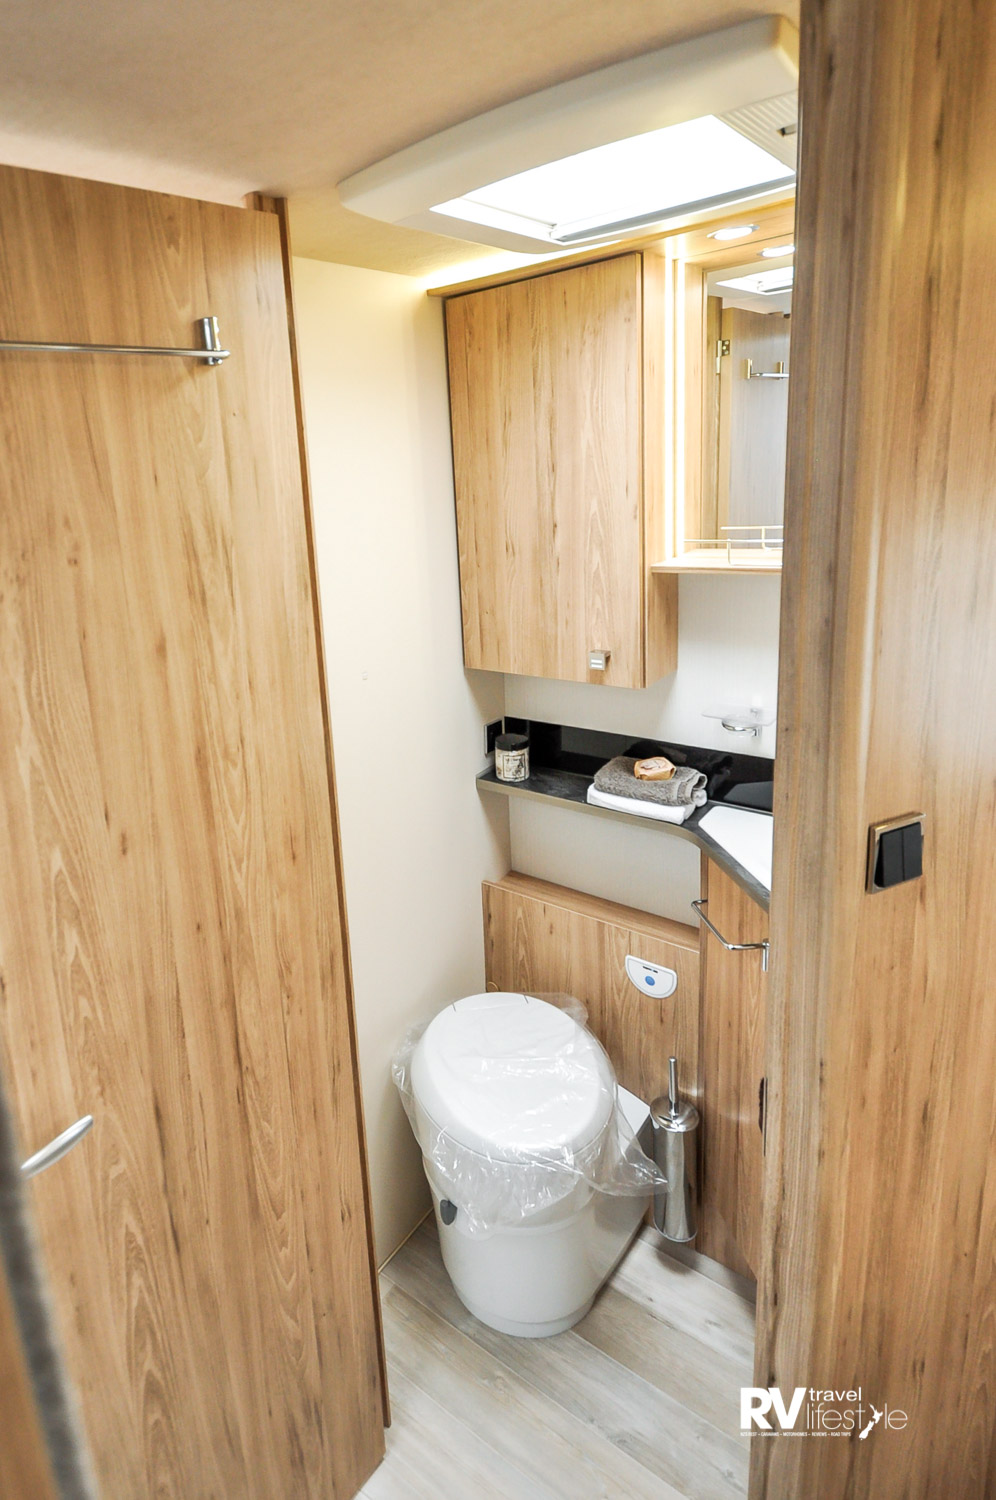 The en suite is well equipped with pedestal swivel electric toilet, plenty of storage, ventilation and lighting